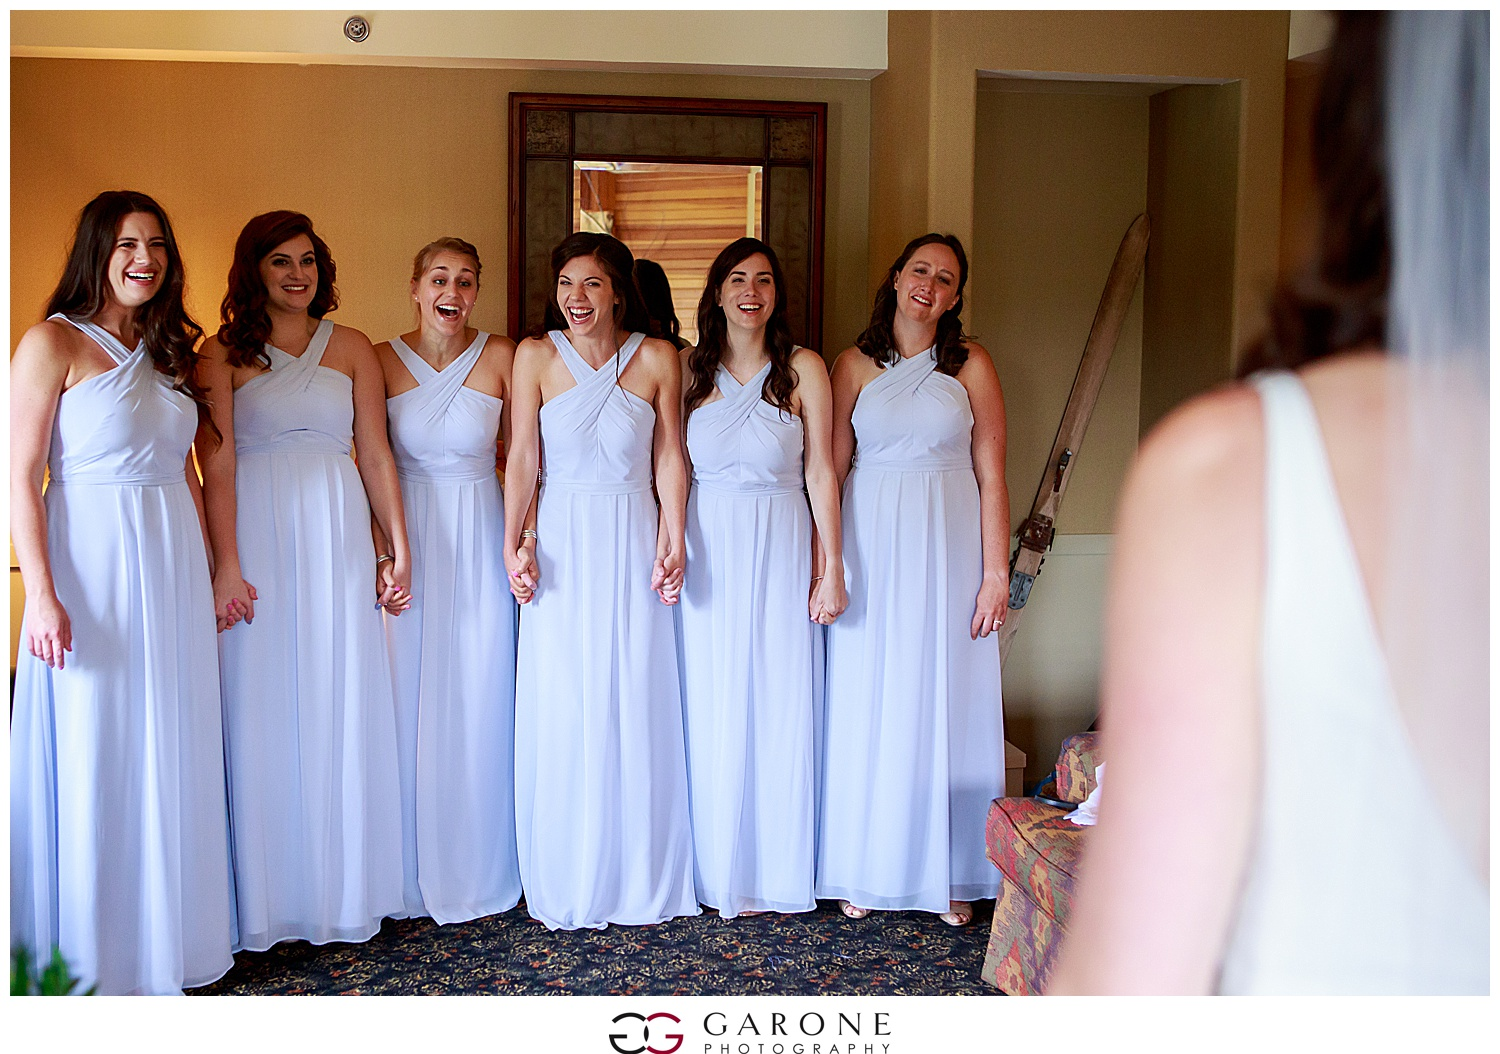 Church_Landing_Garone_Photography_Wedding_Sarah_Patrick_0005.jpg